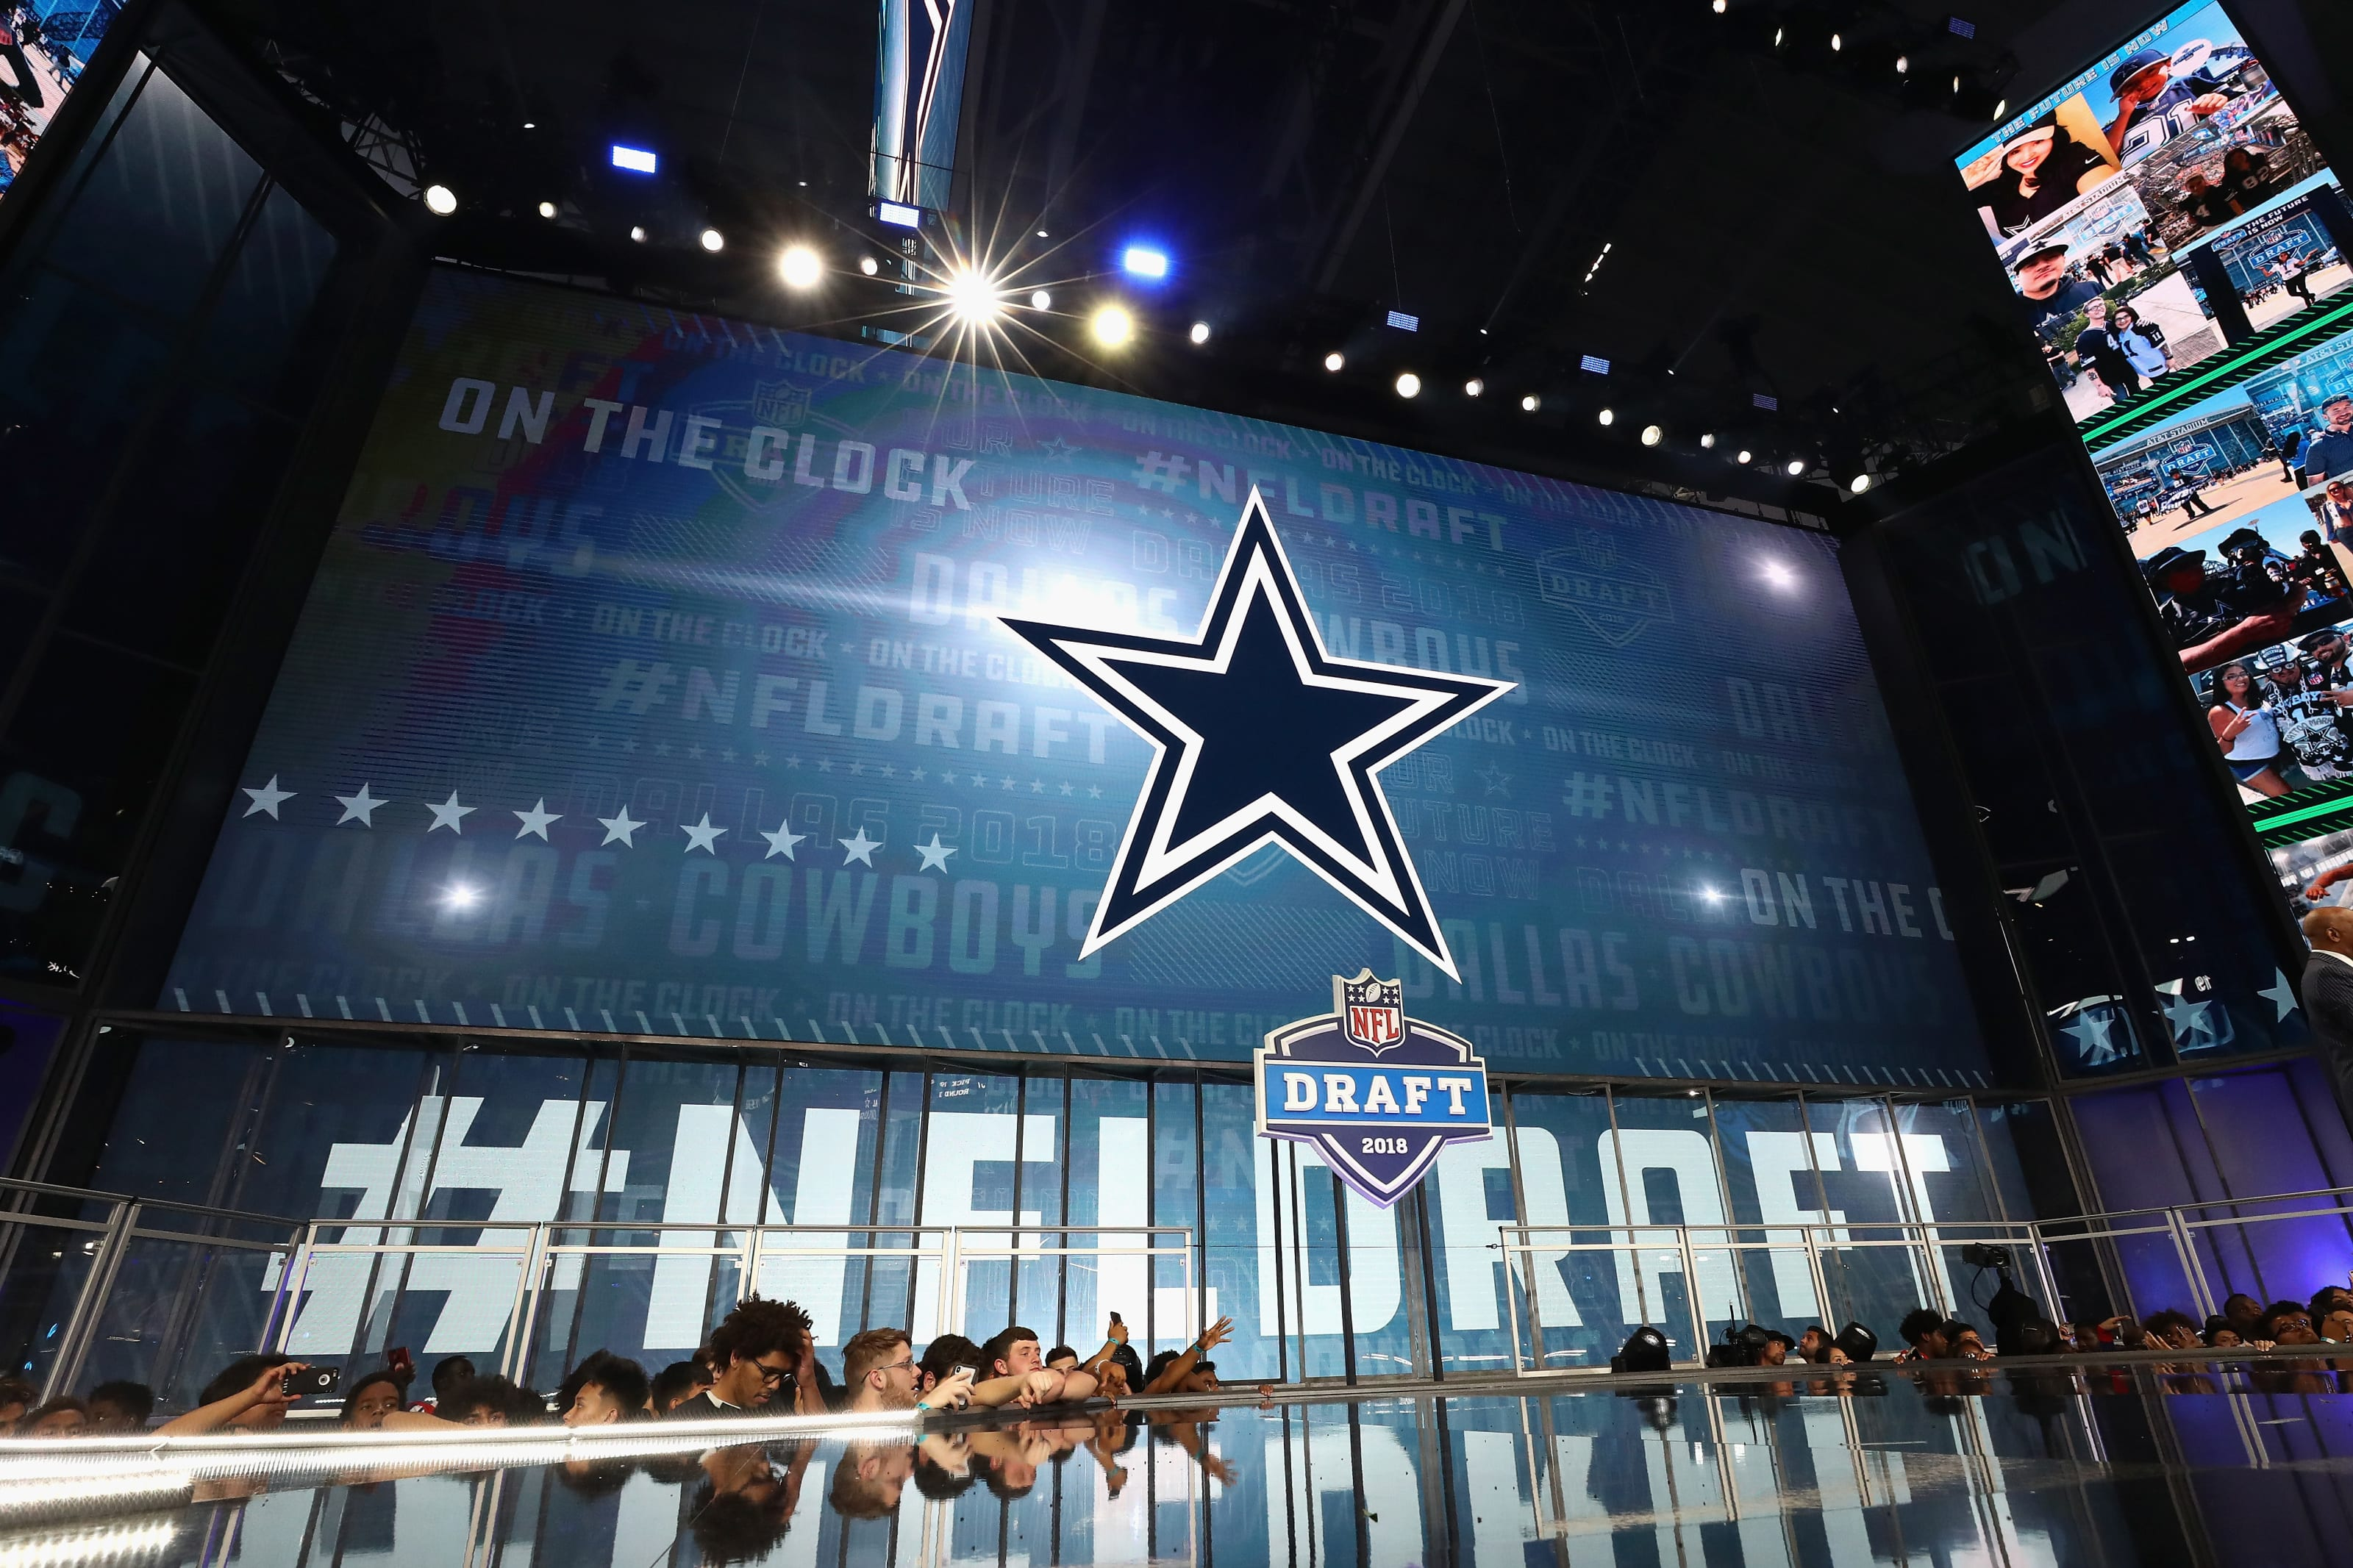 Dallas Cowboys, NFL Draft